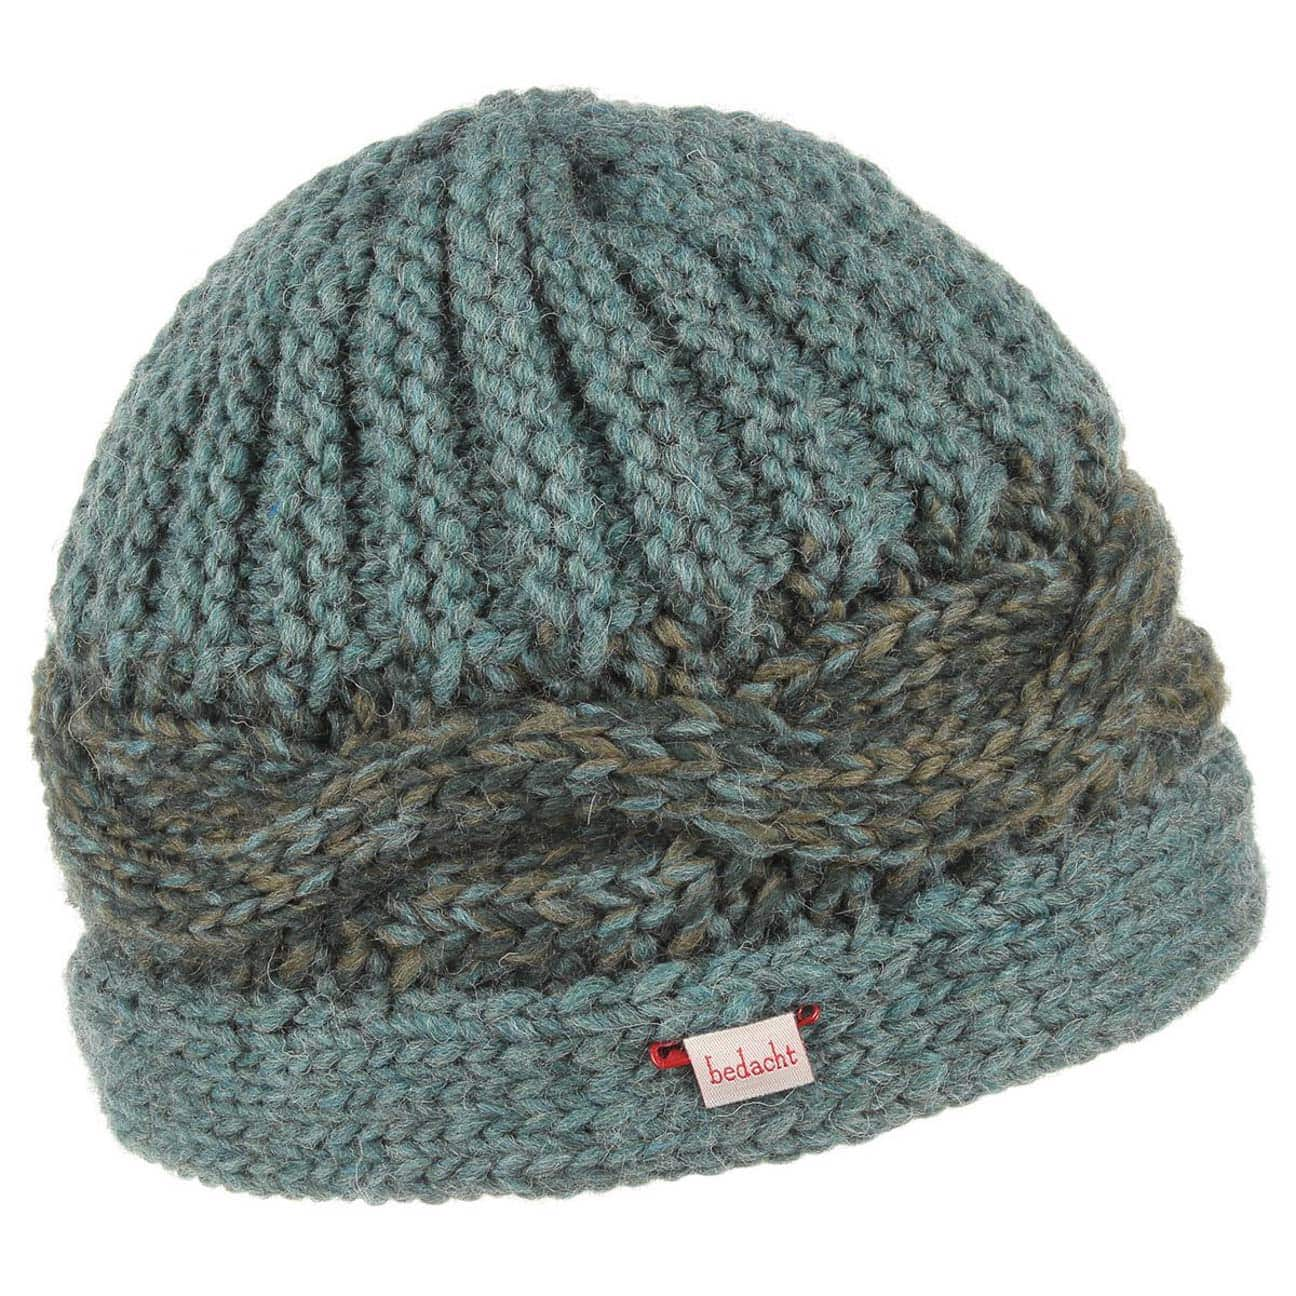 Knitting Pattern For Elsa Hat : Elsa Knit Hat by bedacht, GBP 19,95 --> Hats, caps & beanies shop onli...